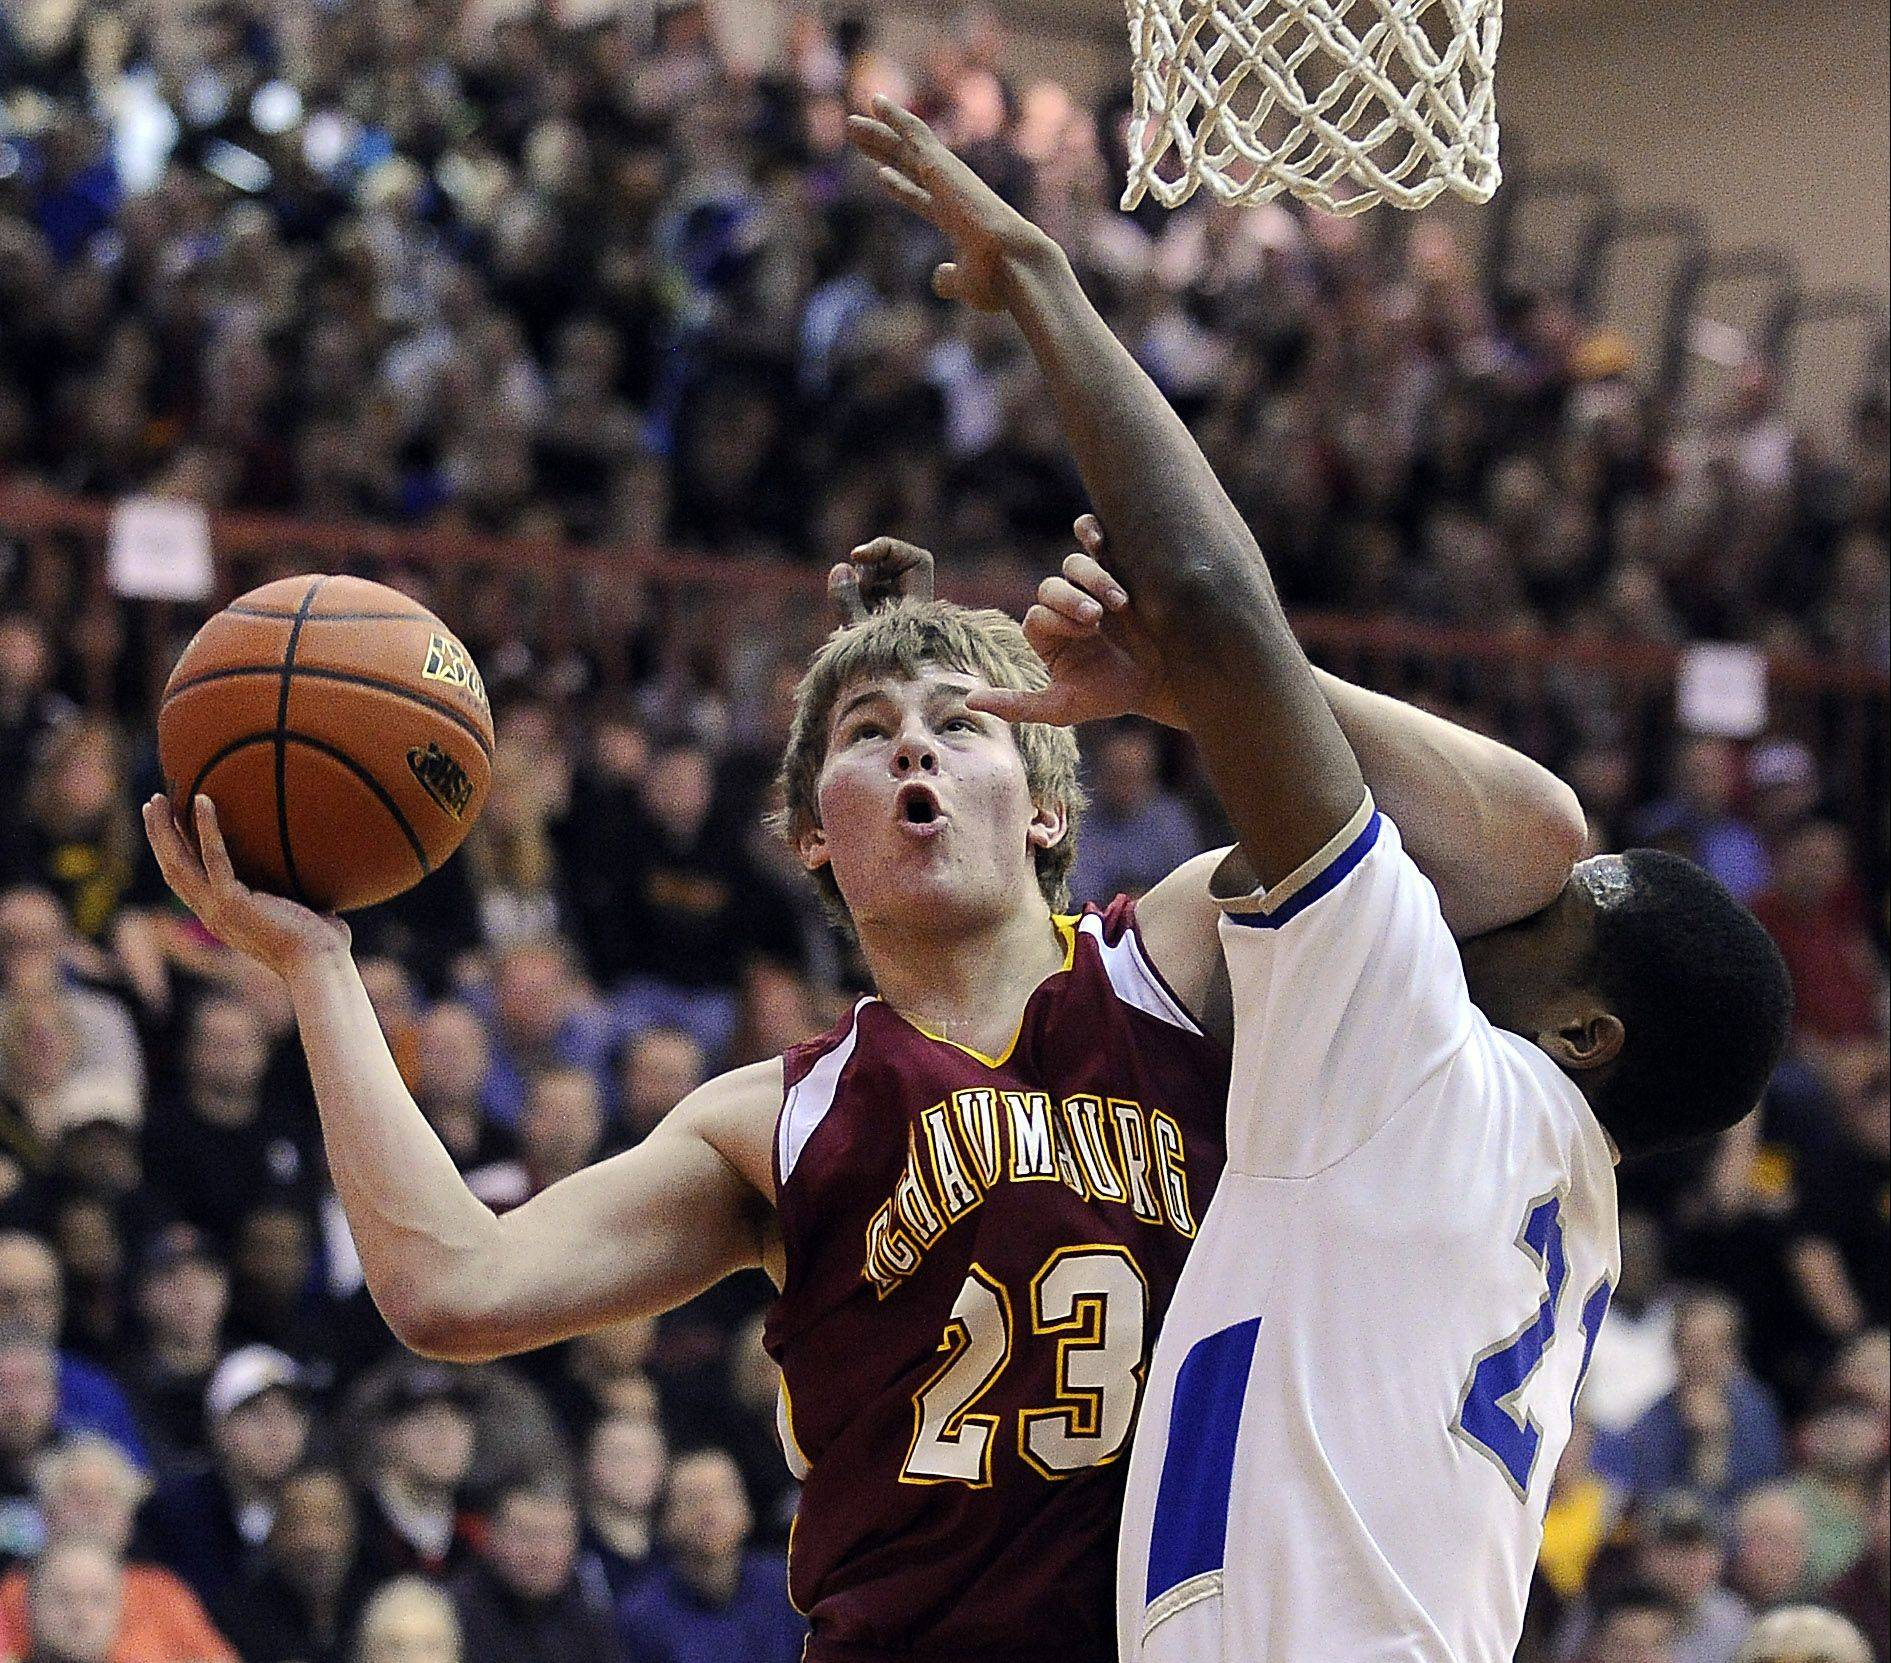 Schaumburg's Kyle Bolger powers his way to the basket with Proviso East's Sterling Brown defending in sectional final action at Schaumburg on Friday.